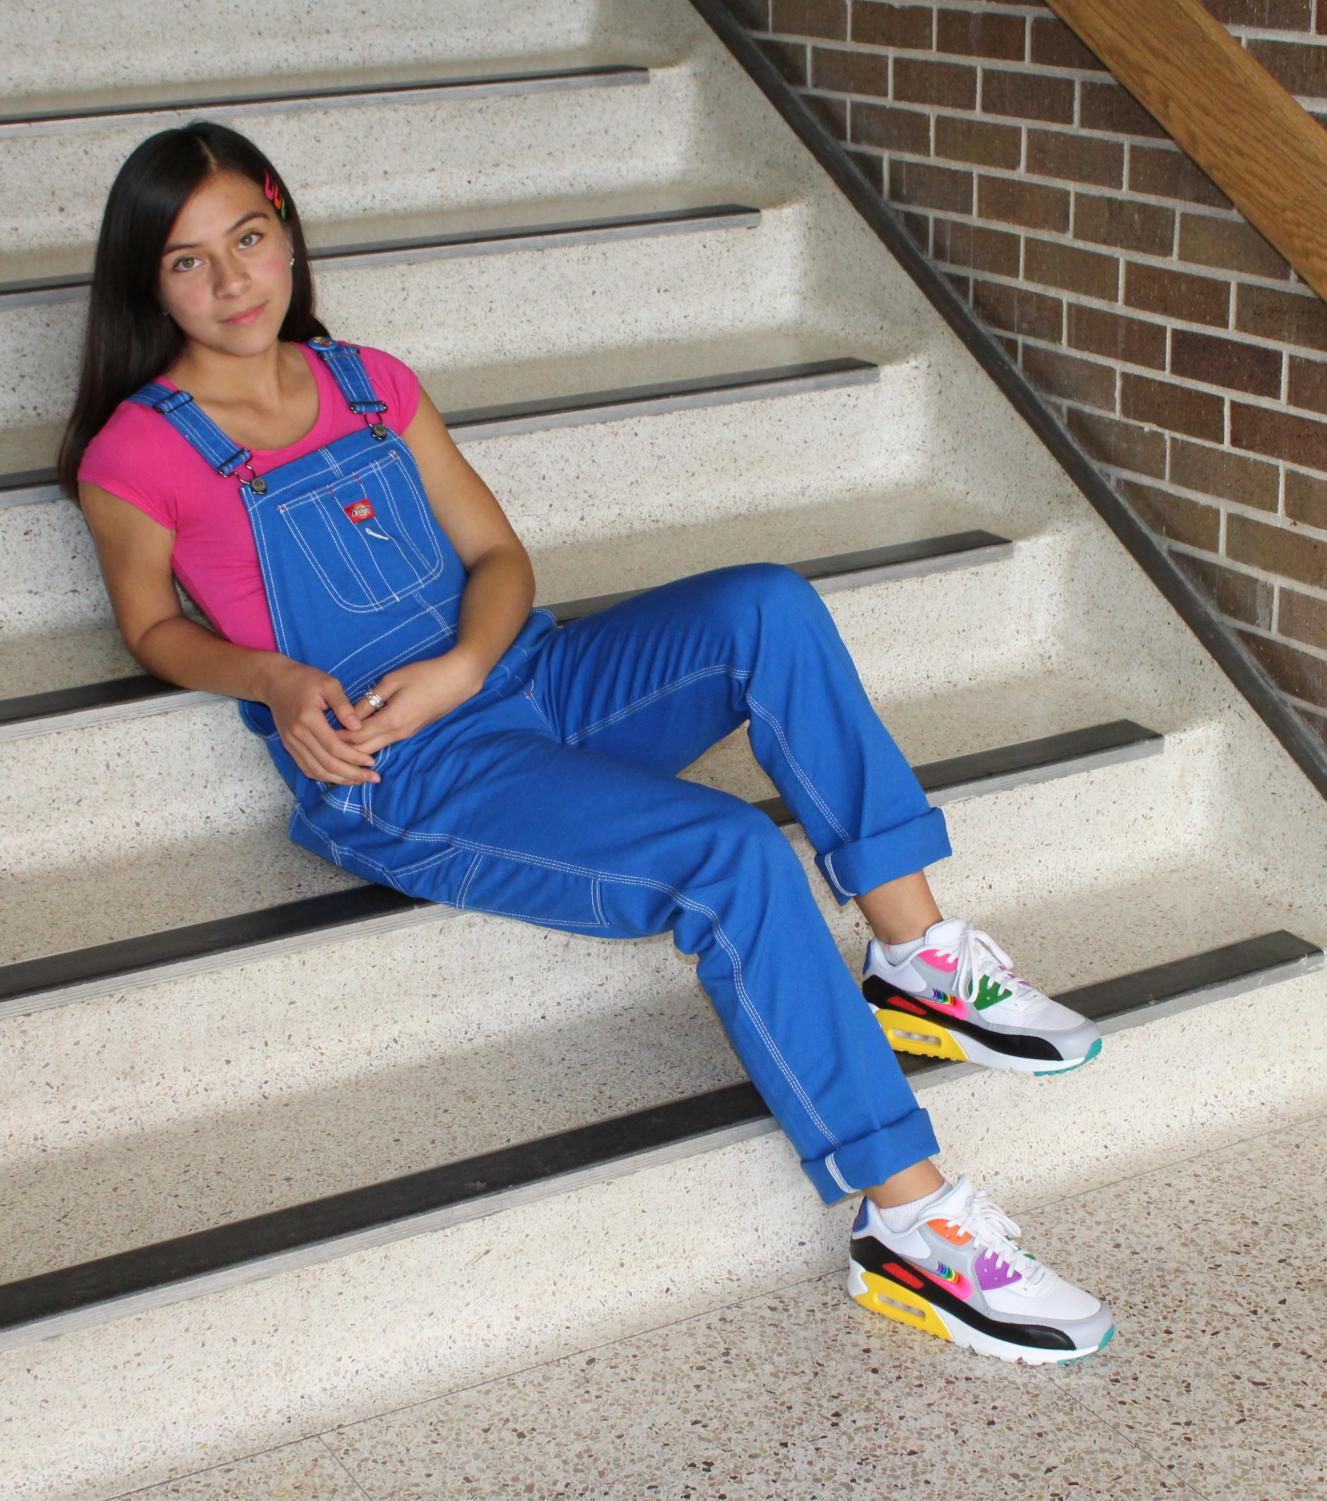 Relaxing on the stairs, Ruby Bugarin Arce looks up with confidence in her outfit. At home she decided to get the shoes because of all the colors on them, knowing that they would look good with a lot of her outfits.